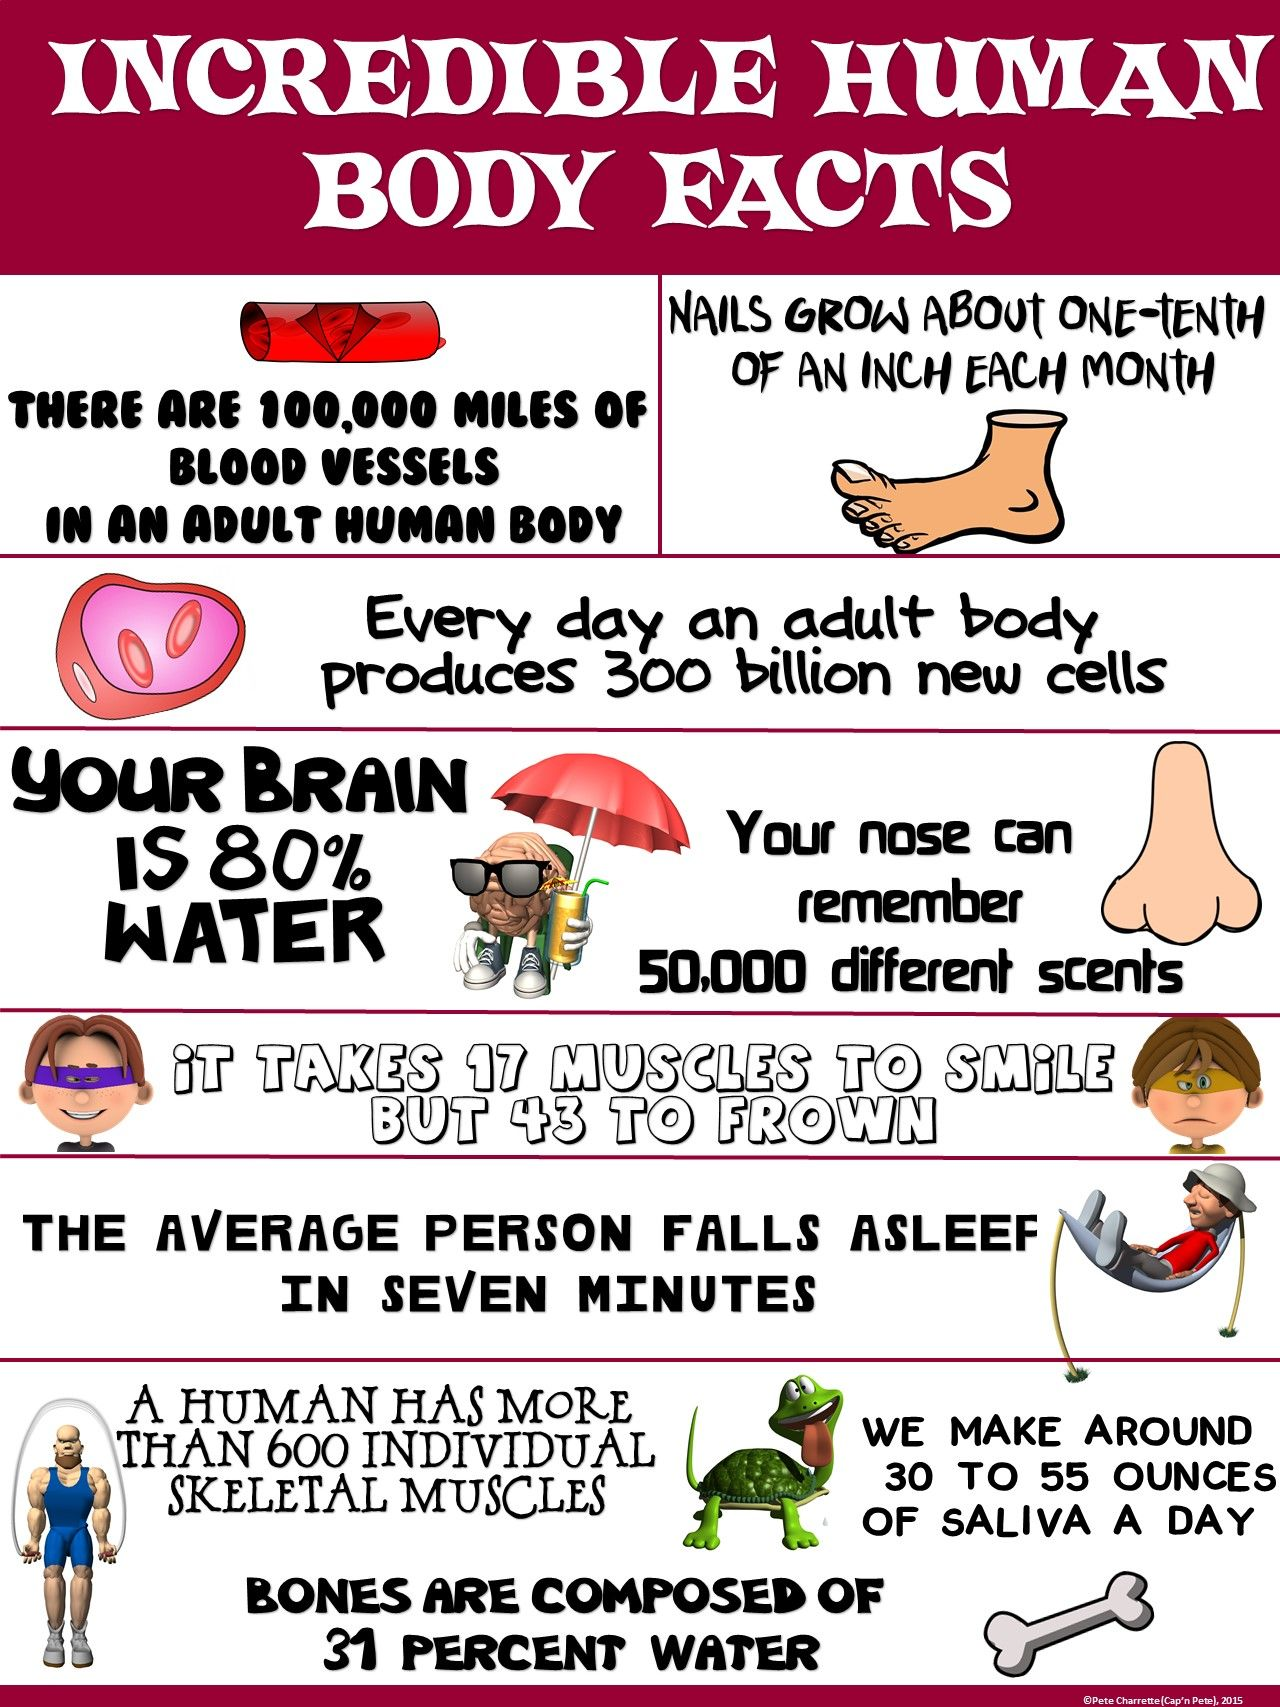 Health And Science Poster Incredible Human Body Facts